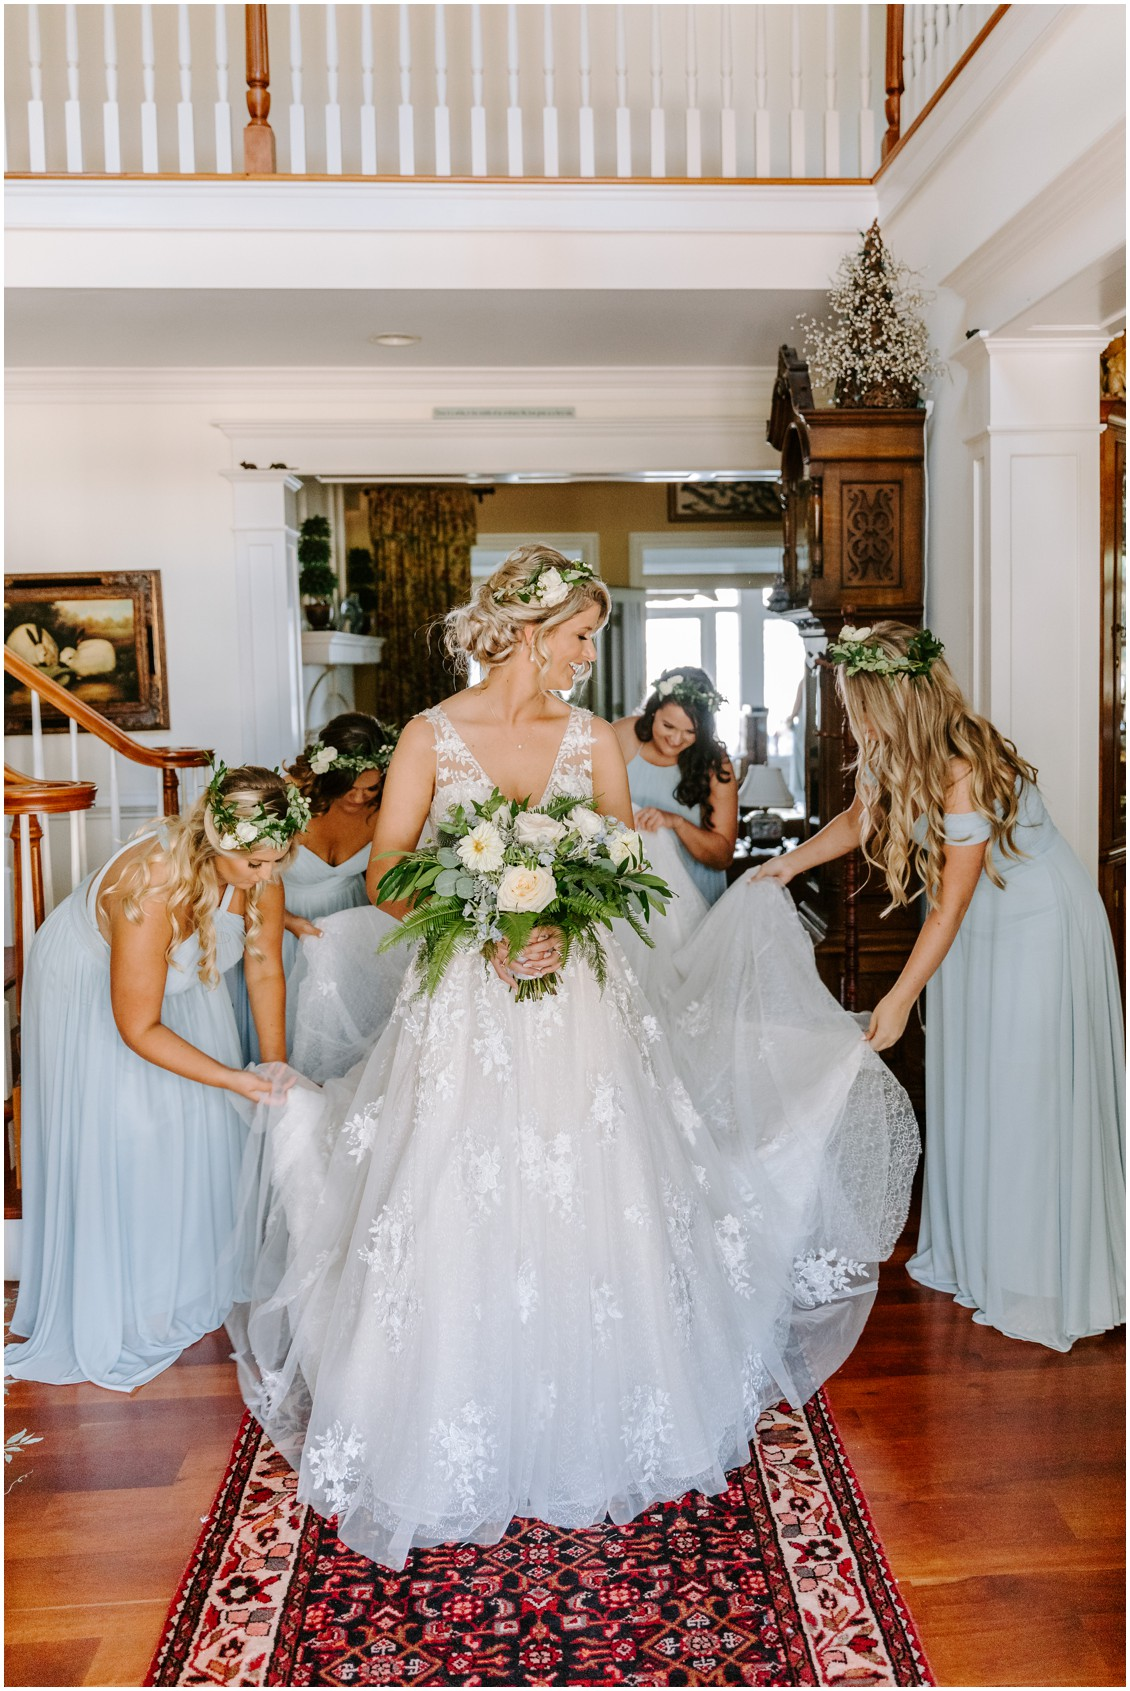 Bride holding bouquet blue and soft greenery bridal cape getting ready | My Eastern Shore Wedding | Sherwood Florist